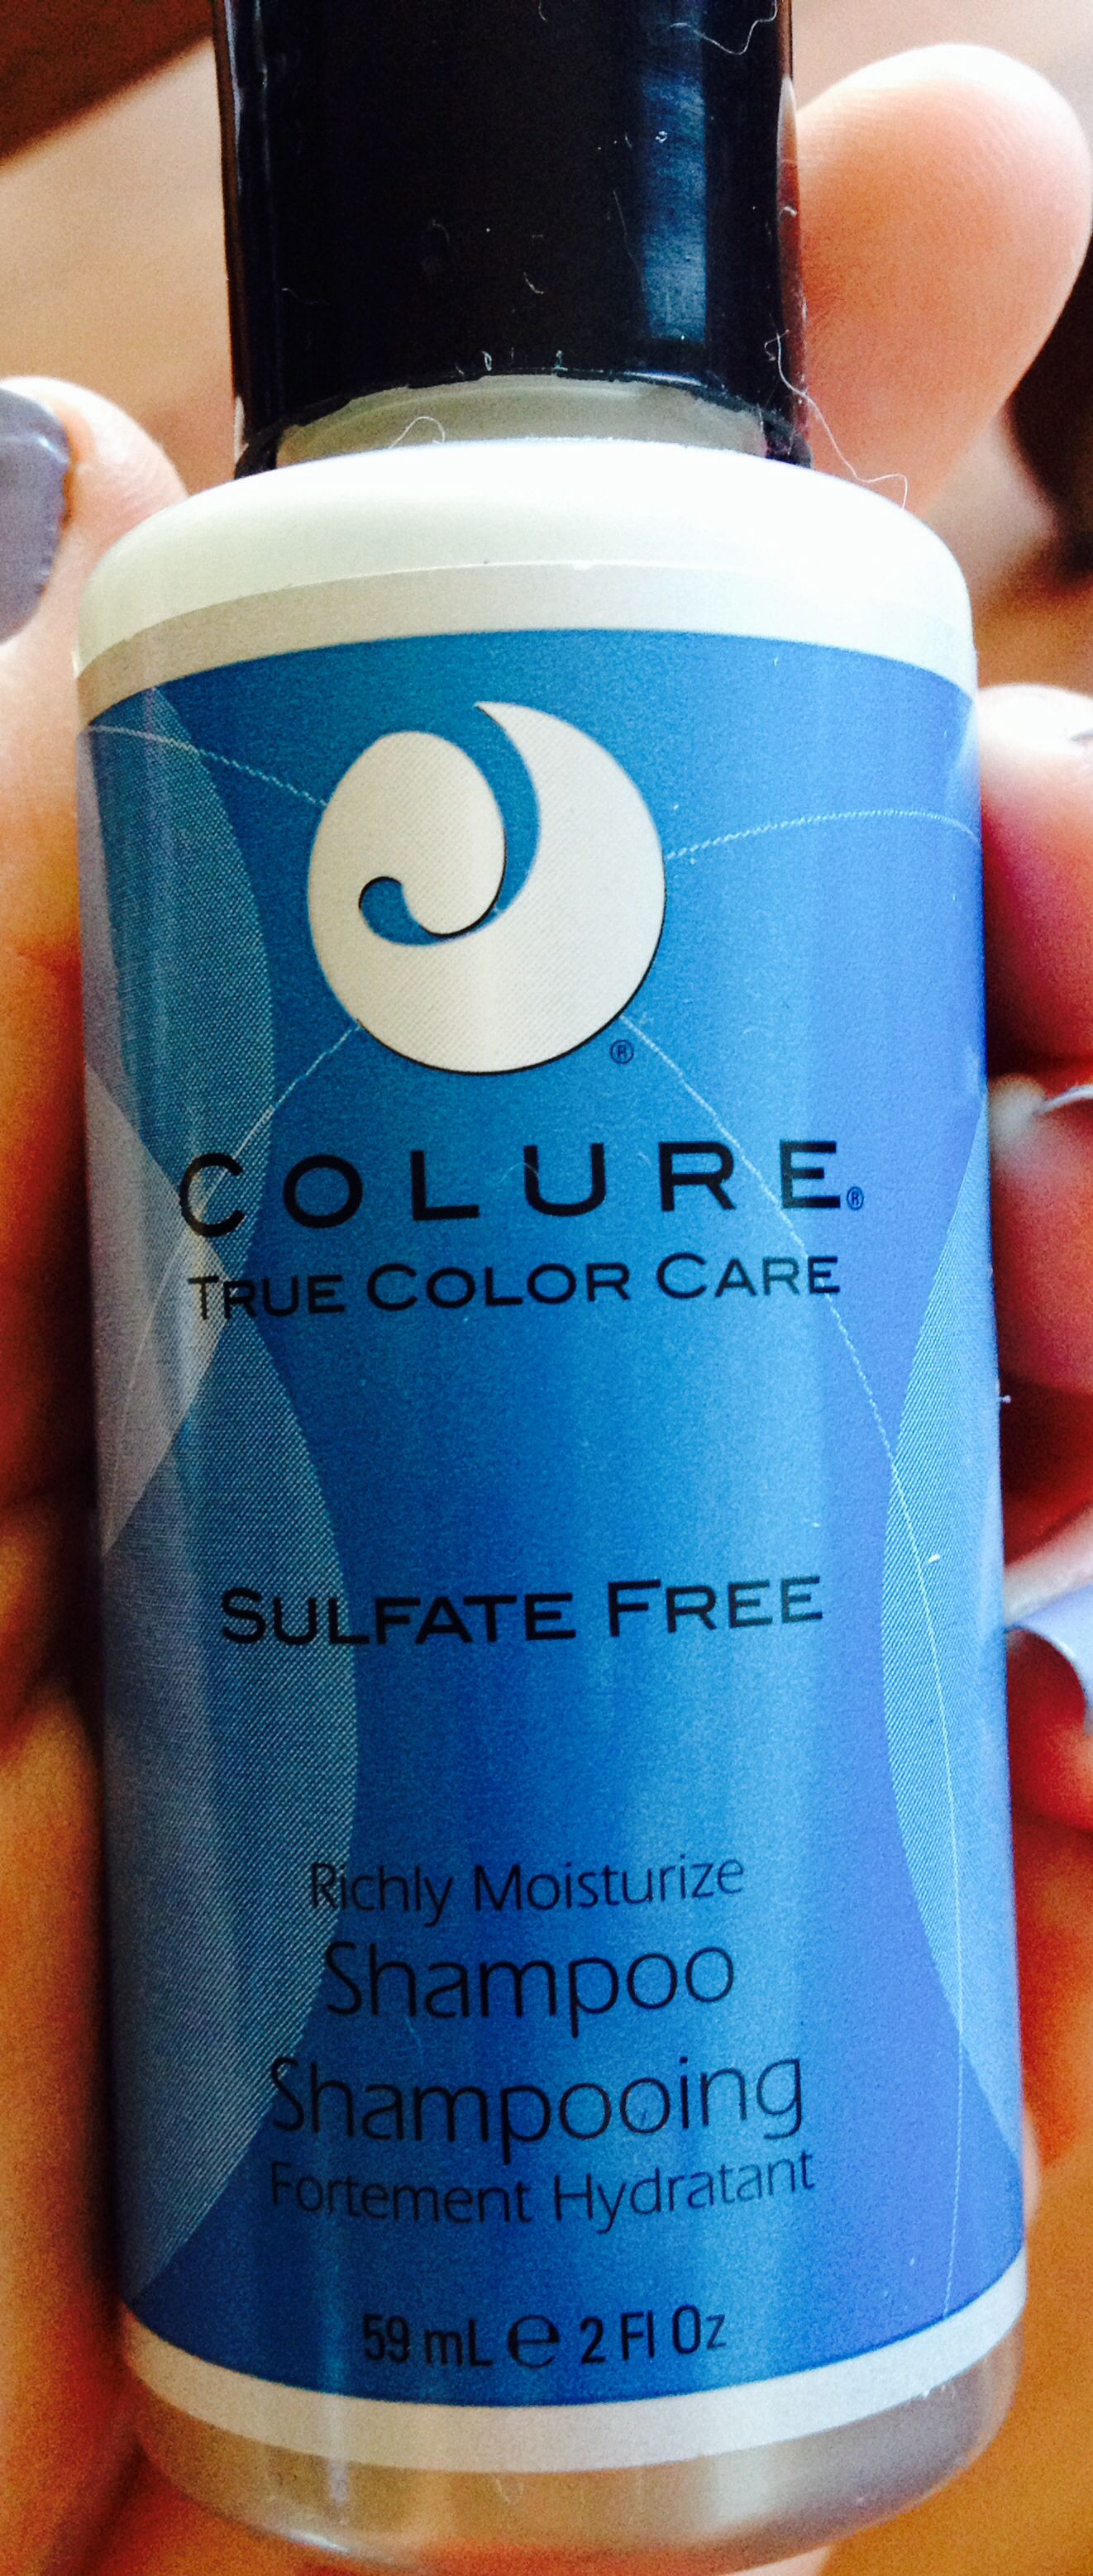 Colure Color Care shampoo travel size (unopened)